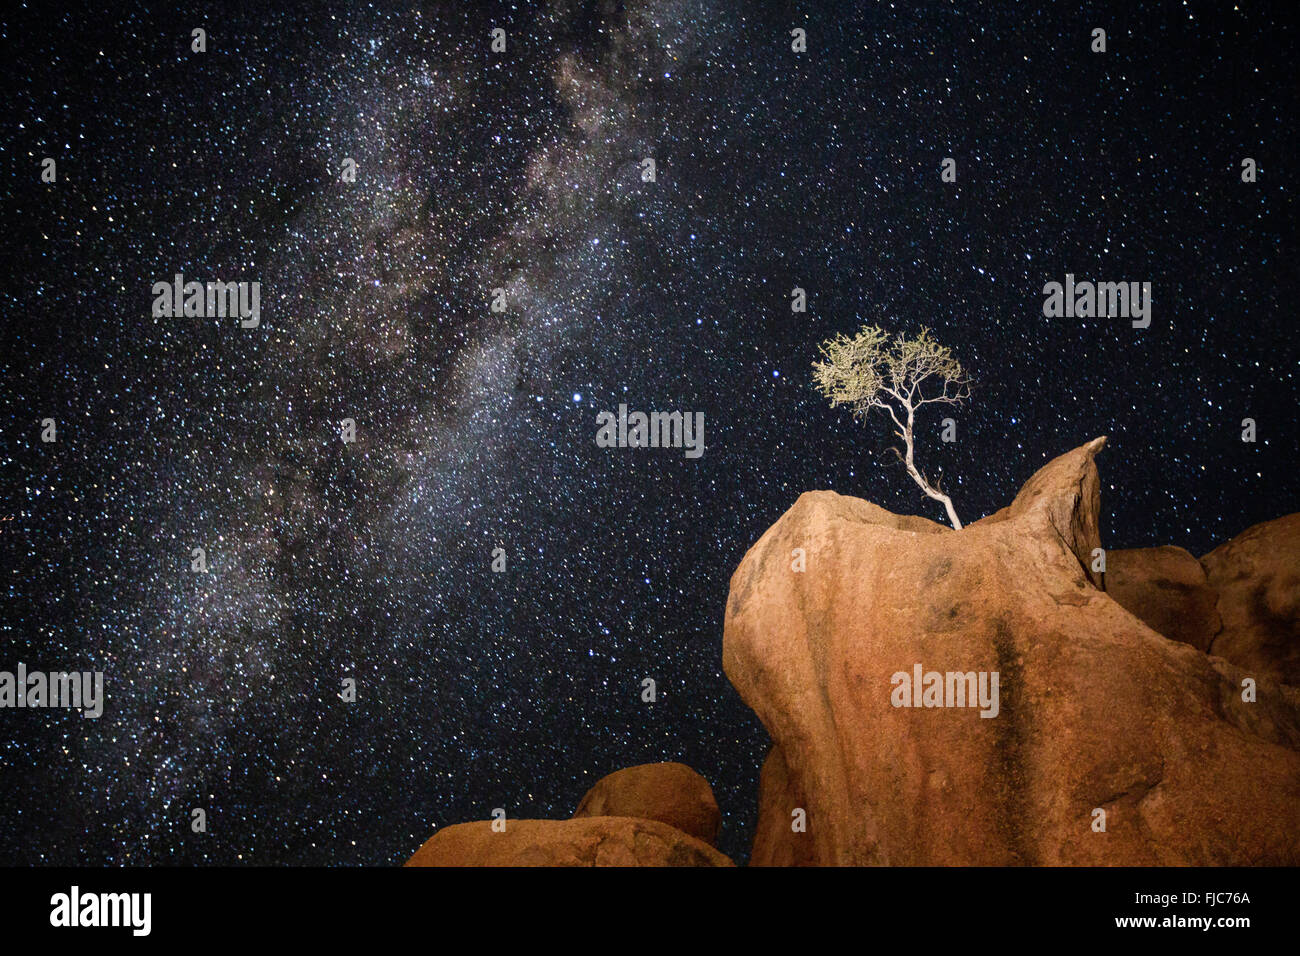 A tree under the Milky Way - Stock Image